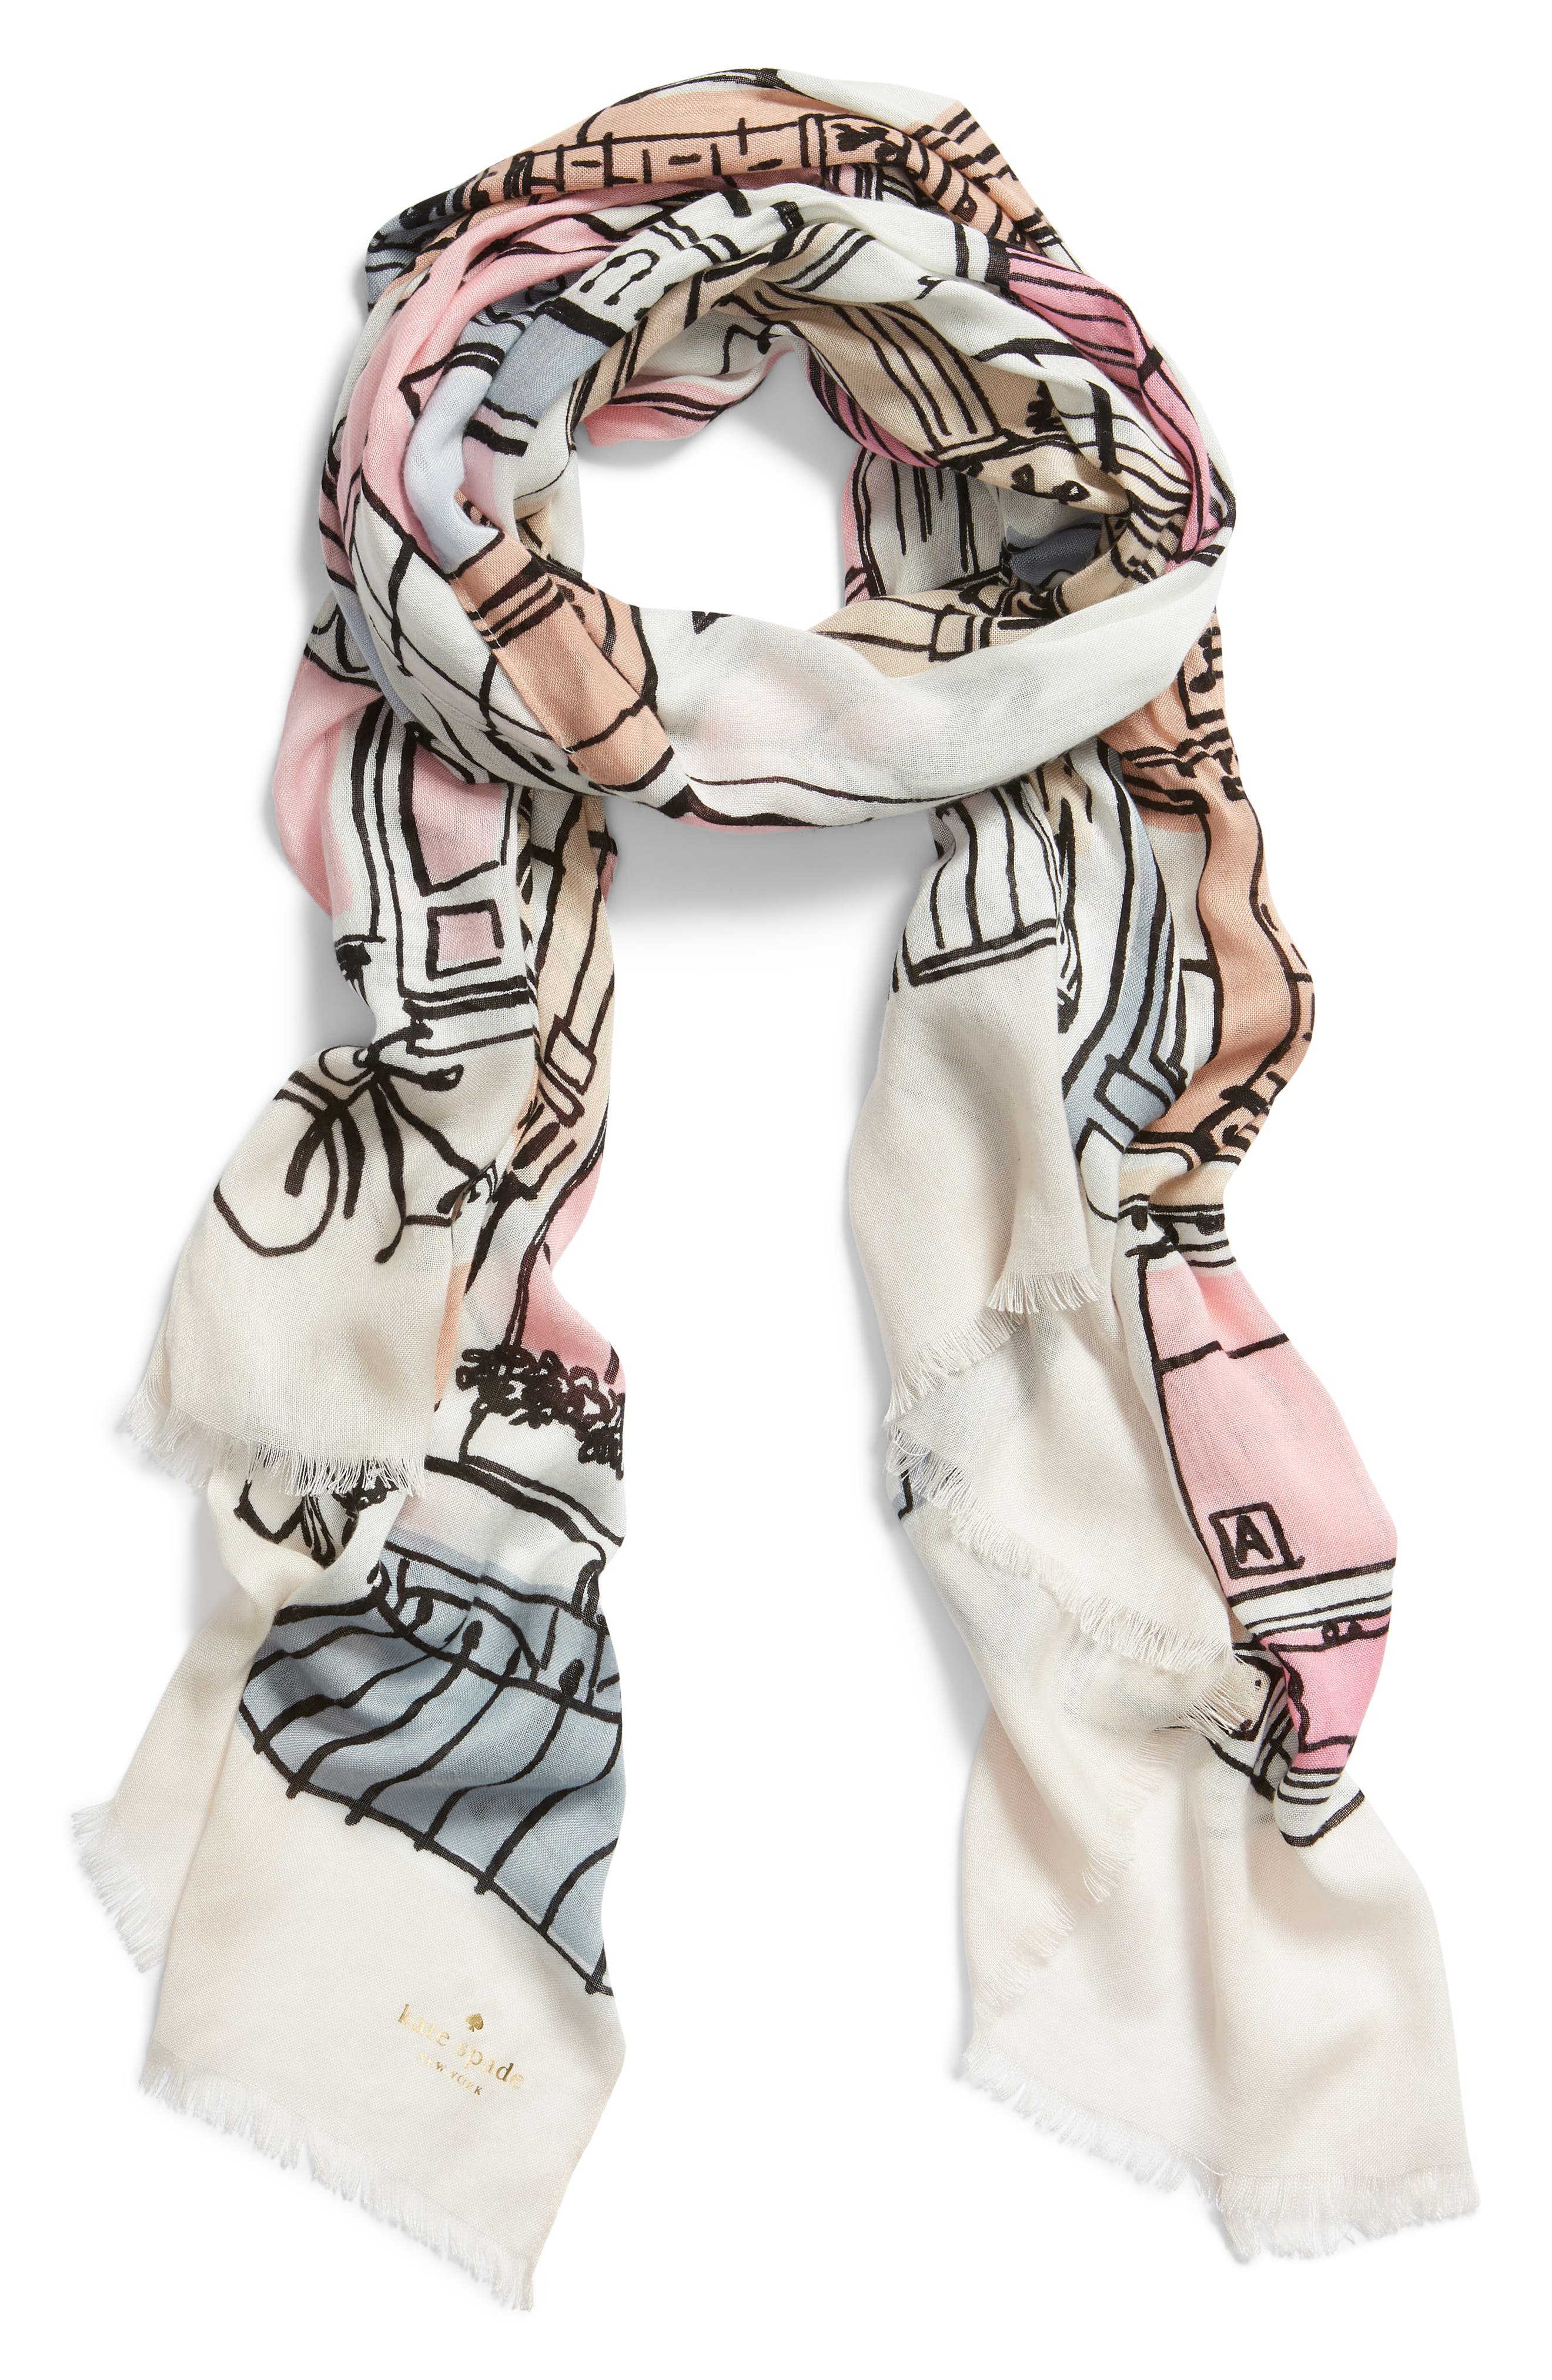 KATE SPADE NEW YORK,                             brooklyn scene scarf,                             Alternate thumbnail 2, color,                             CREAM